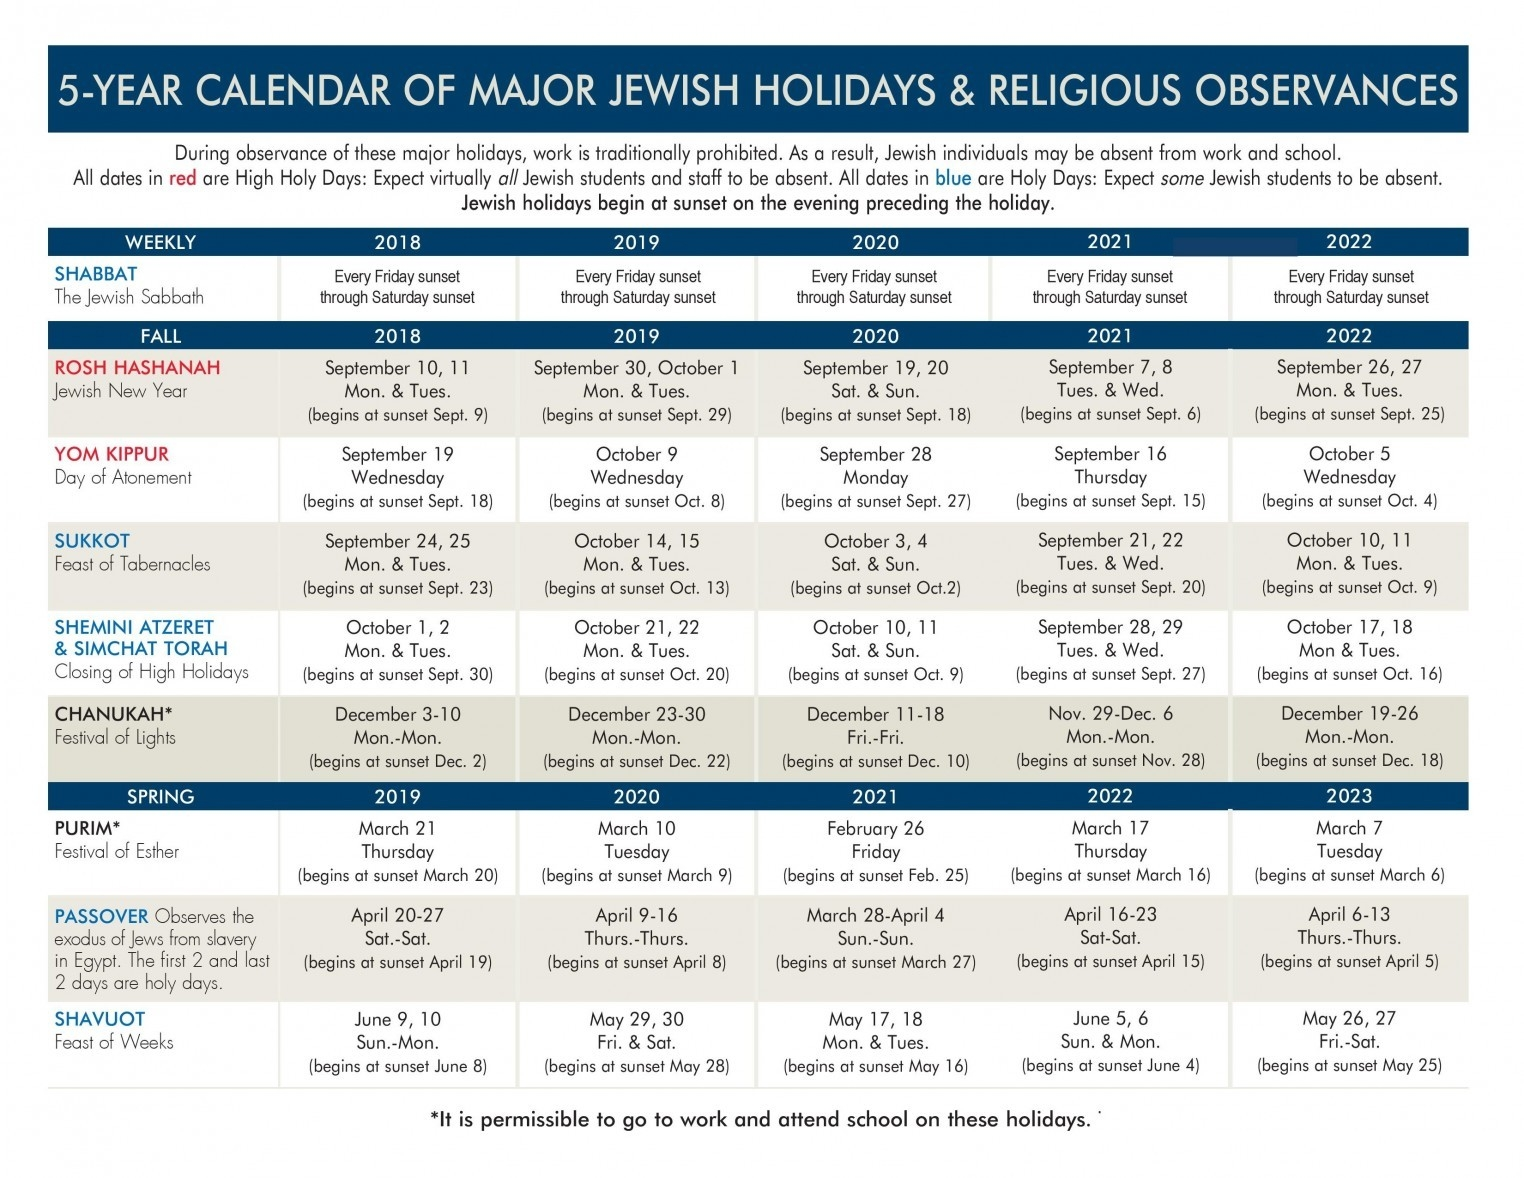 5-Year Jewish Holiday Calendar | Jewish Federation Of-Calendar With Jewish Holidays 2020